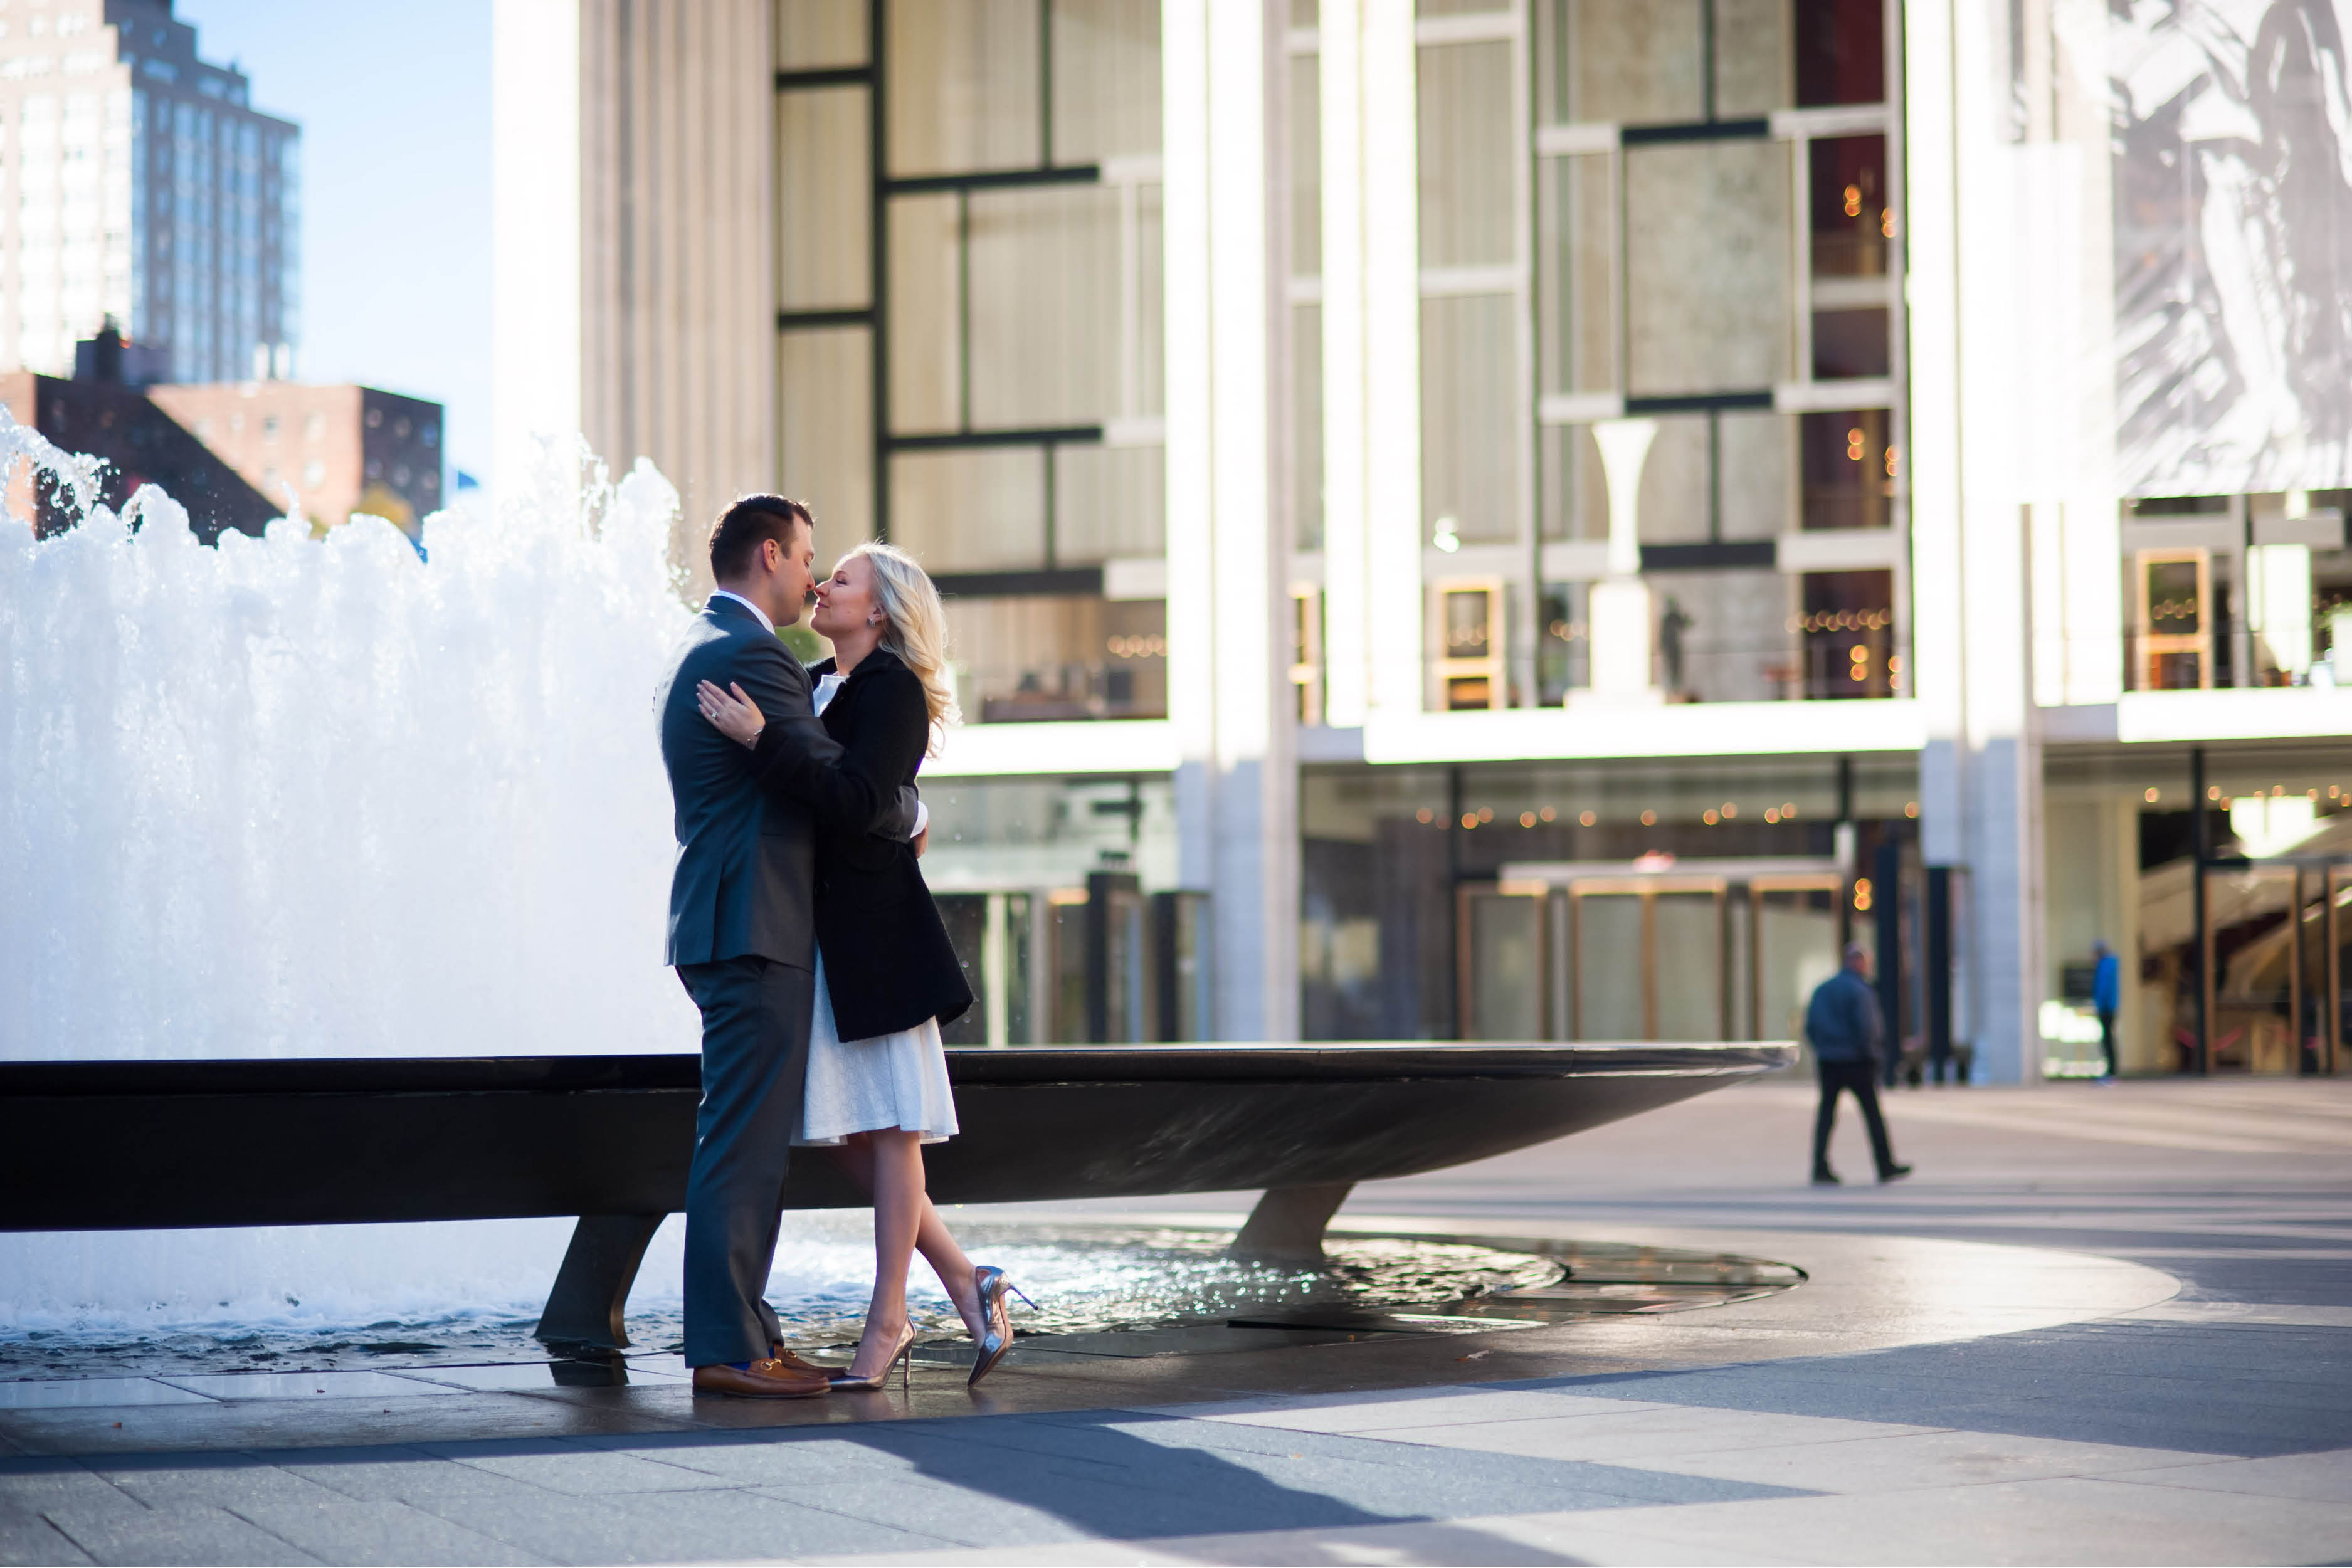 Emma_cleary_photography Lincoln center engagement shoot